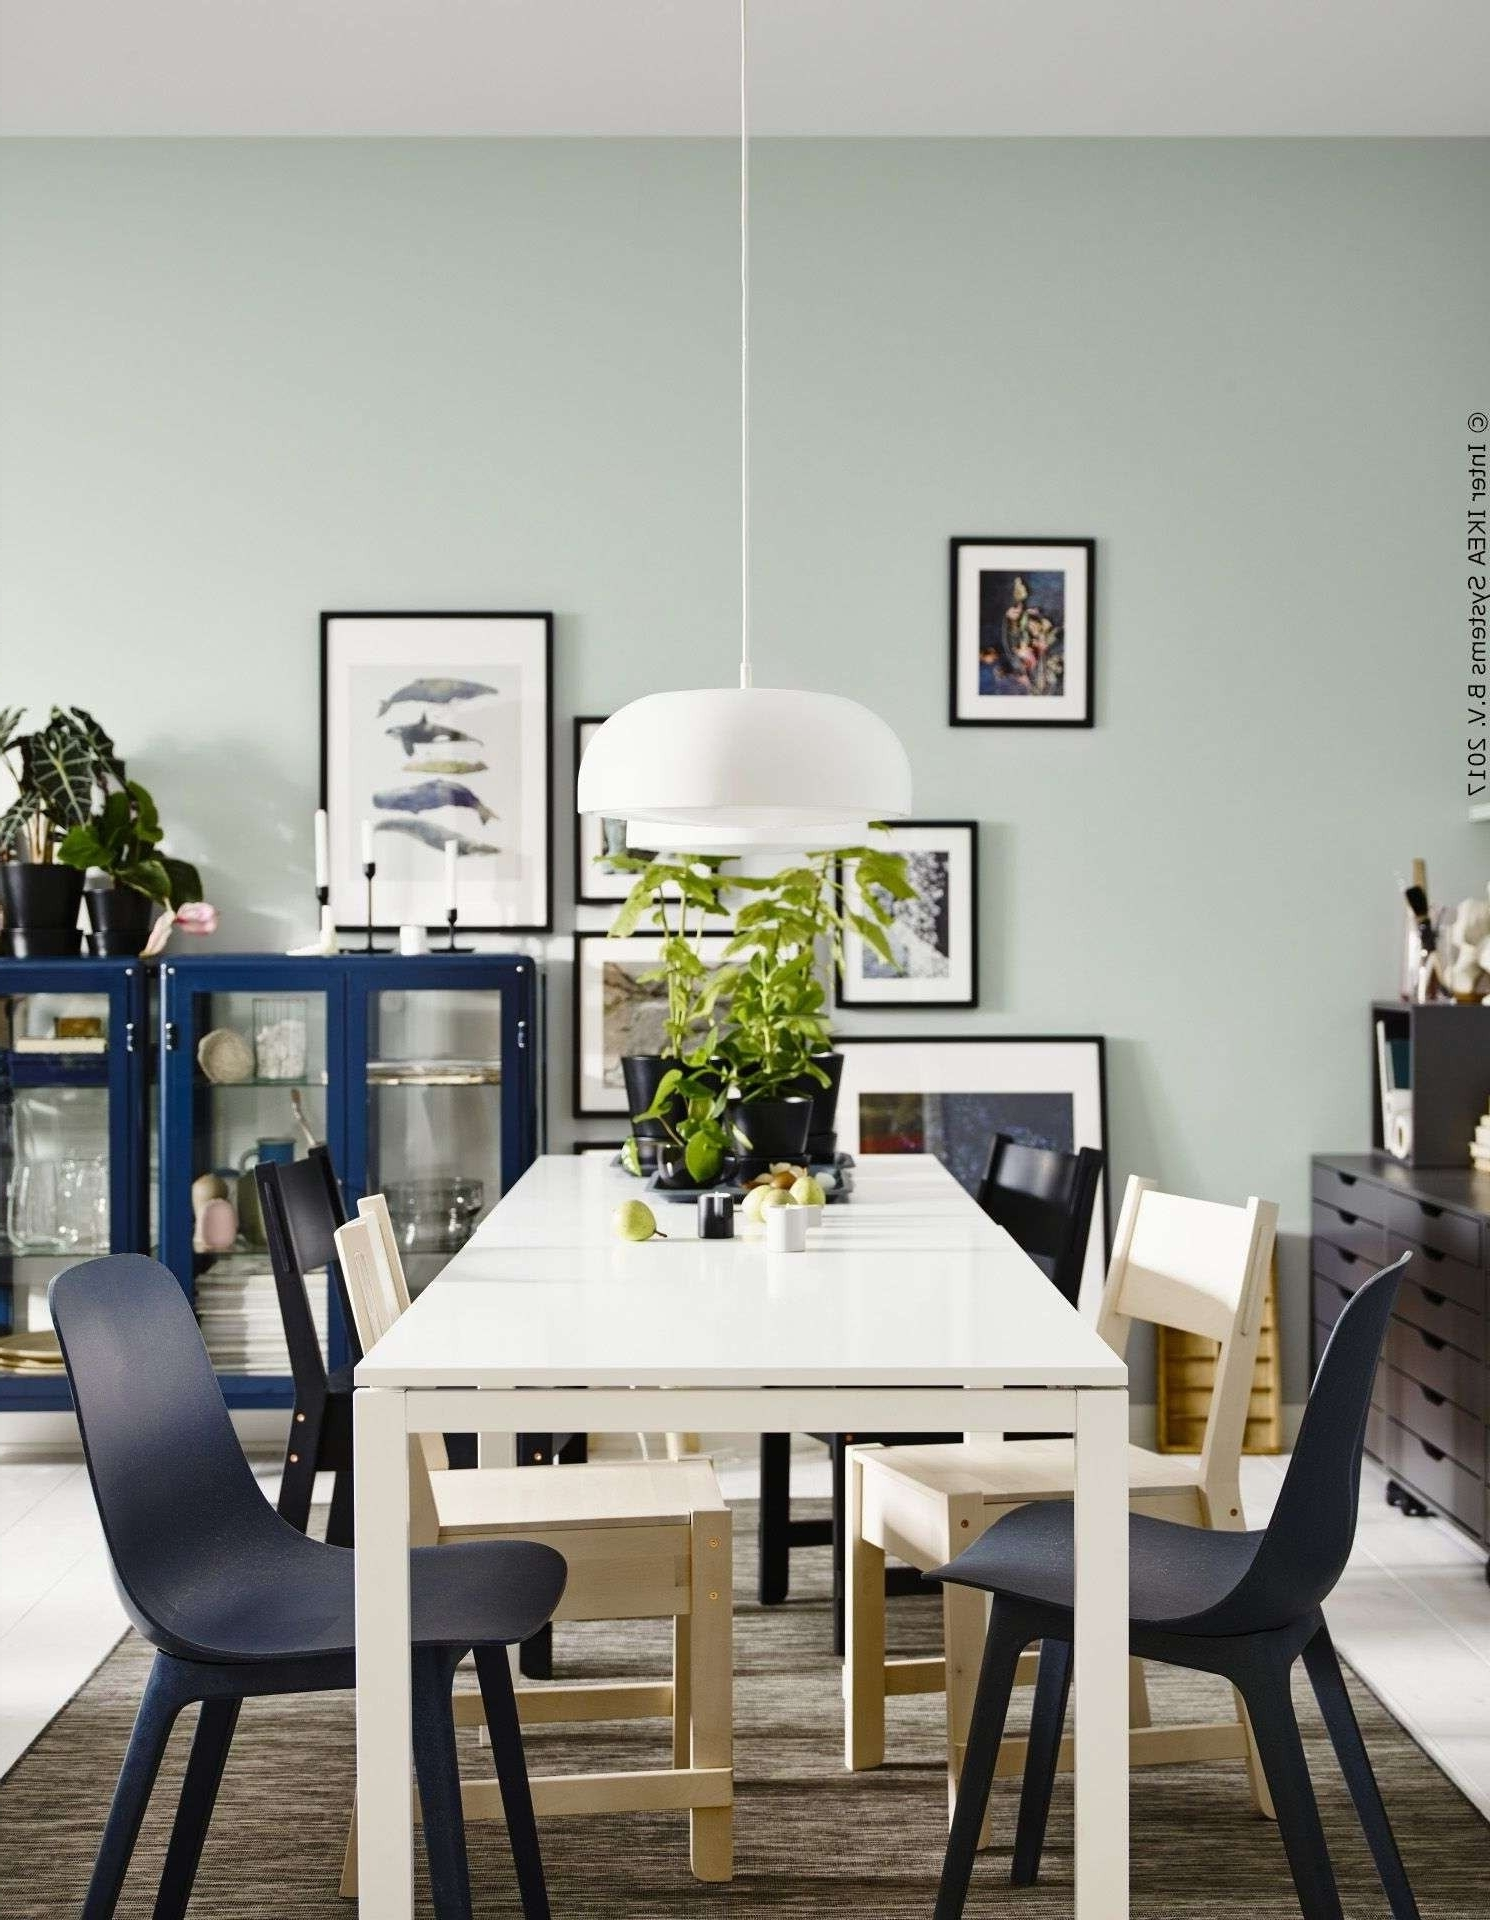 Extendable Dining Tables For Small Spaces Inspirational White Round with Fashionable Small Round White Dining Tables